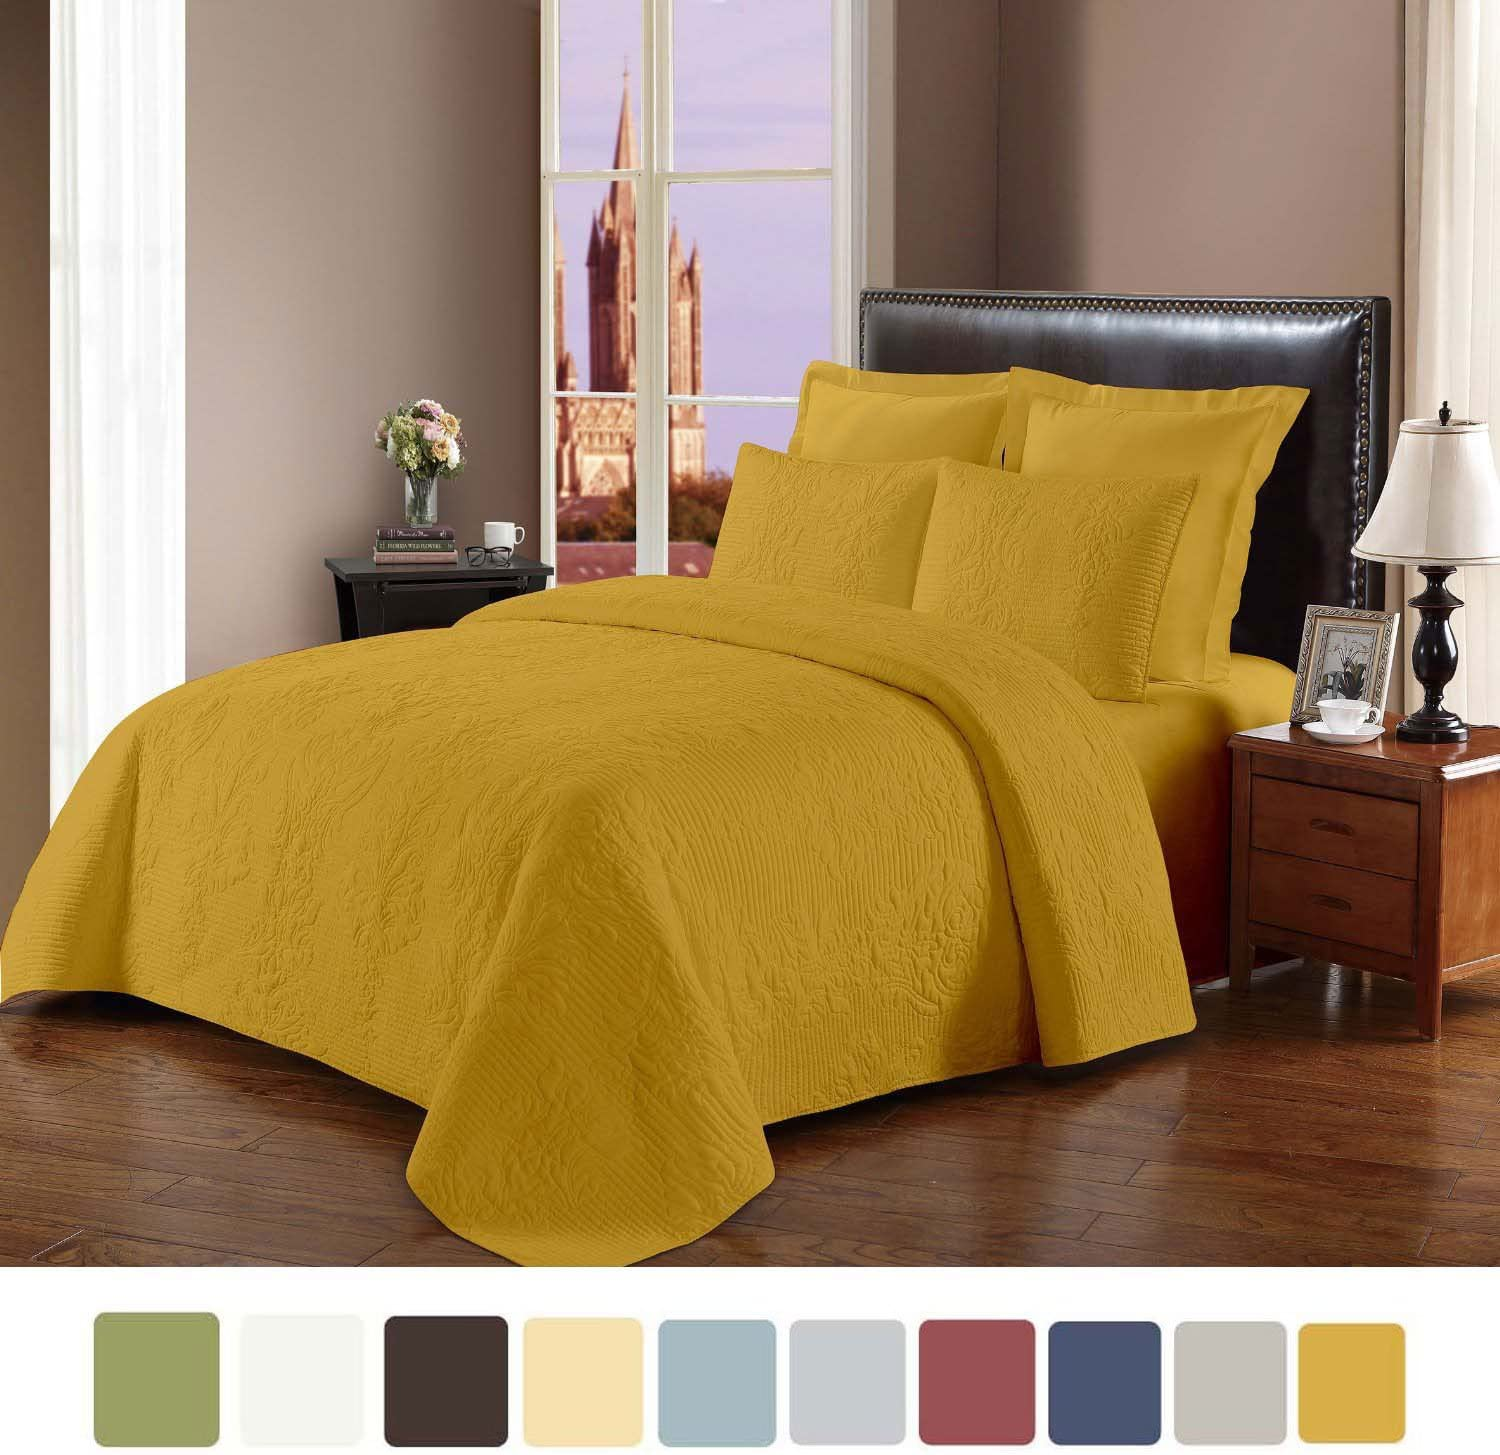 NC Home Fashions Prewashed Quilt Set (Full/Queen, Bright Yellow) - Cameo Stitched Pattern Bedspread Set - Hypoallergenic Microfiber Comfortable Coverlet Set for All Seasons - 3 Pieces